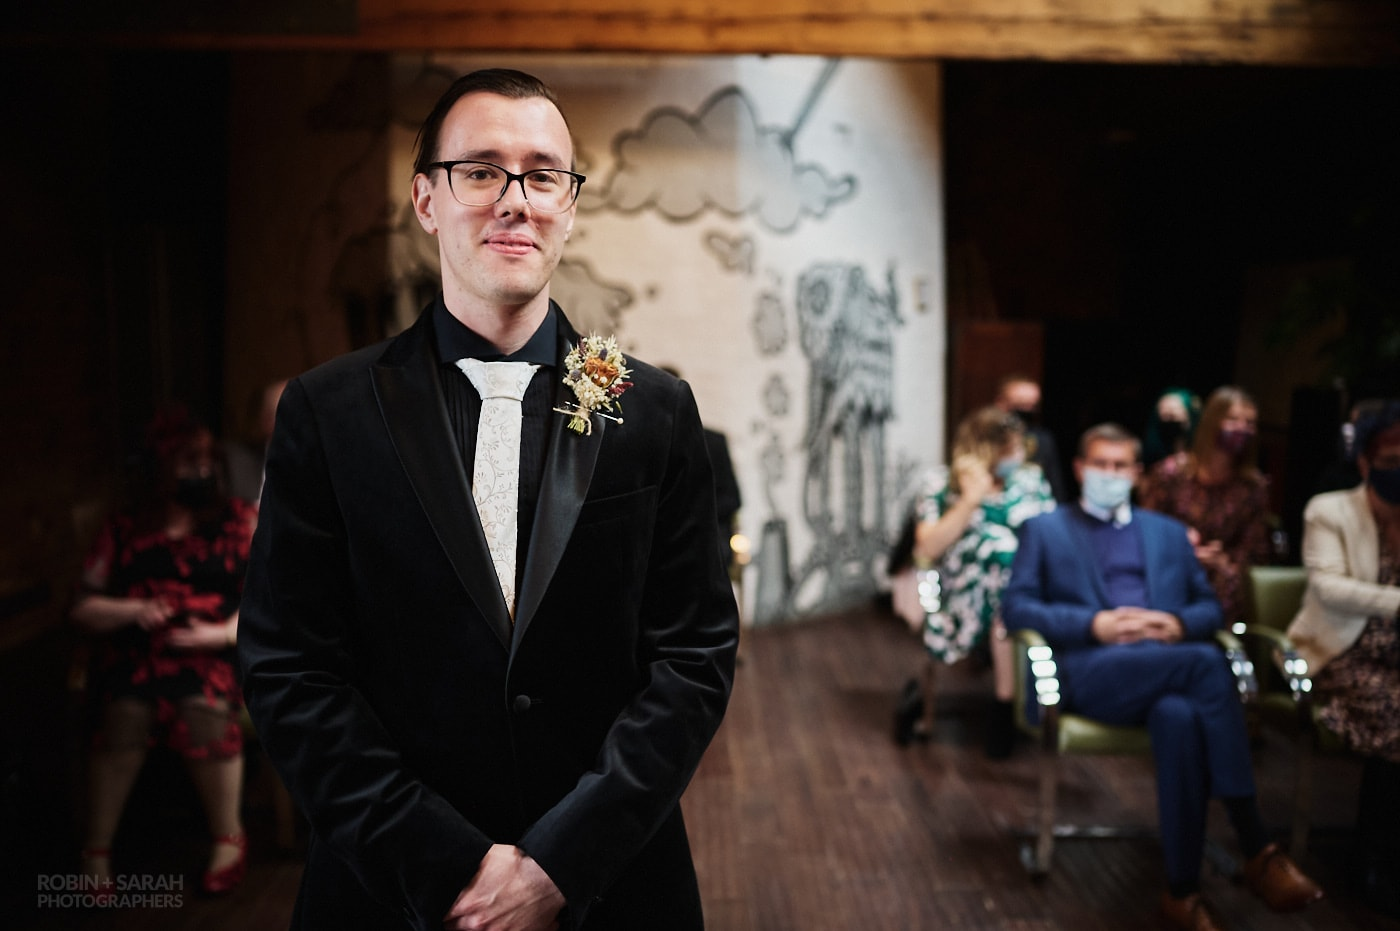 Groom waits for bride with guests watching